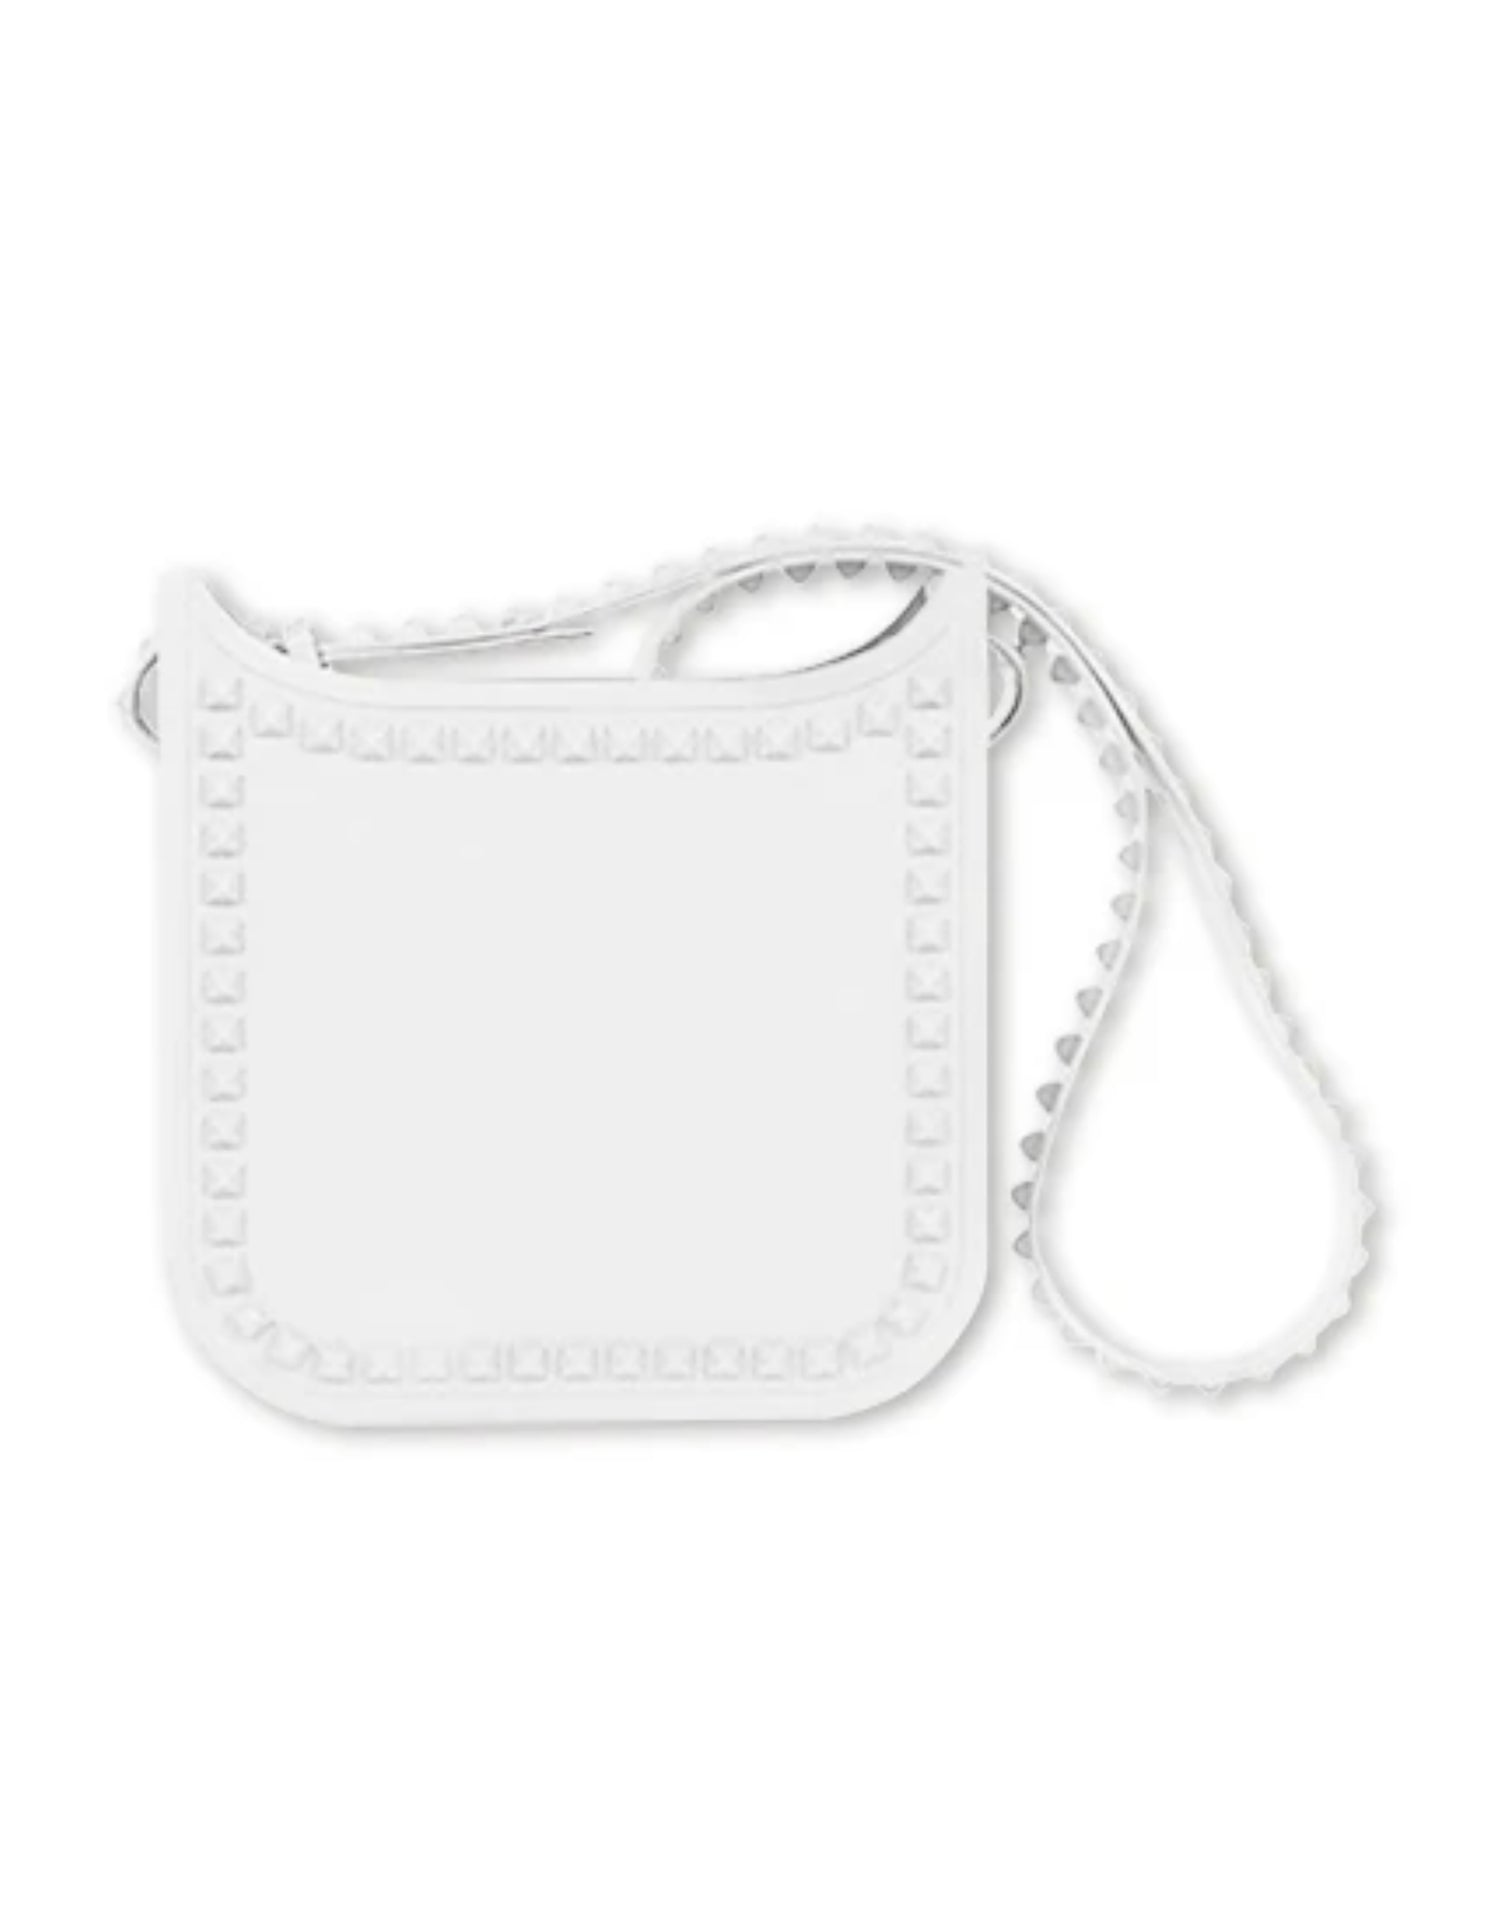 Carmen Sol's Toni Medium Crossbody Bag in White - Product View